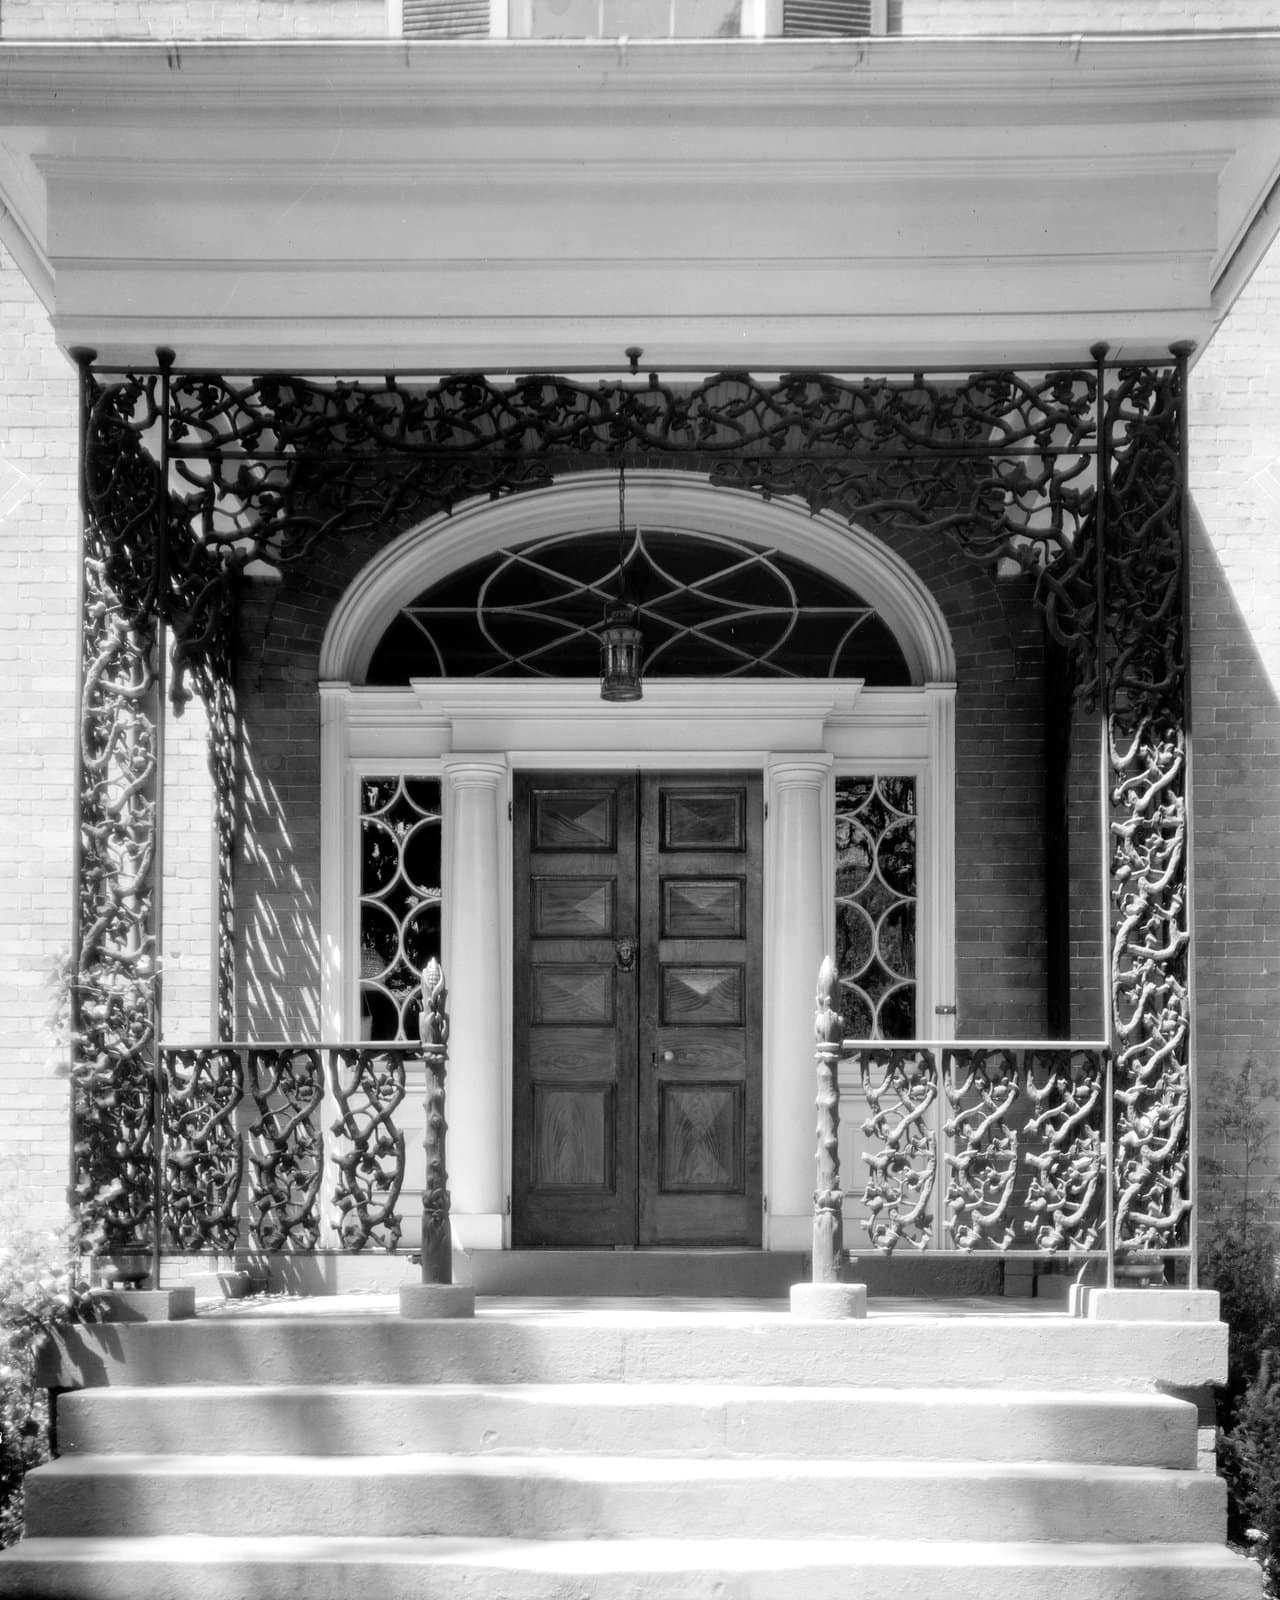 Antique cast iron porch decor at the Doswell House, Fredericksburg, Virginia (1920s)